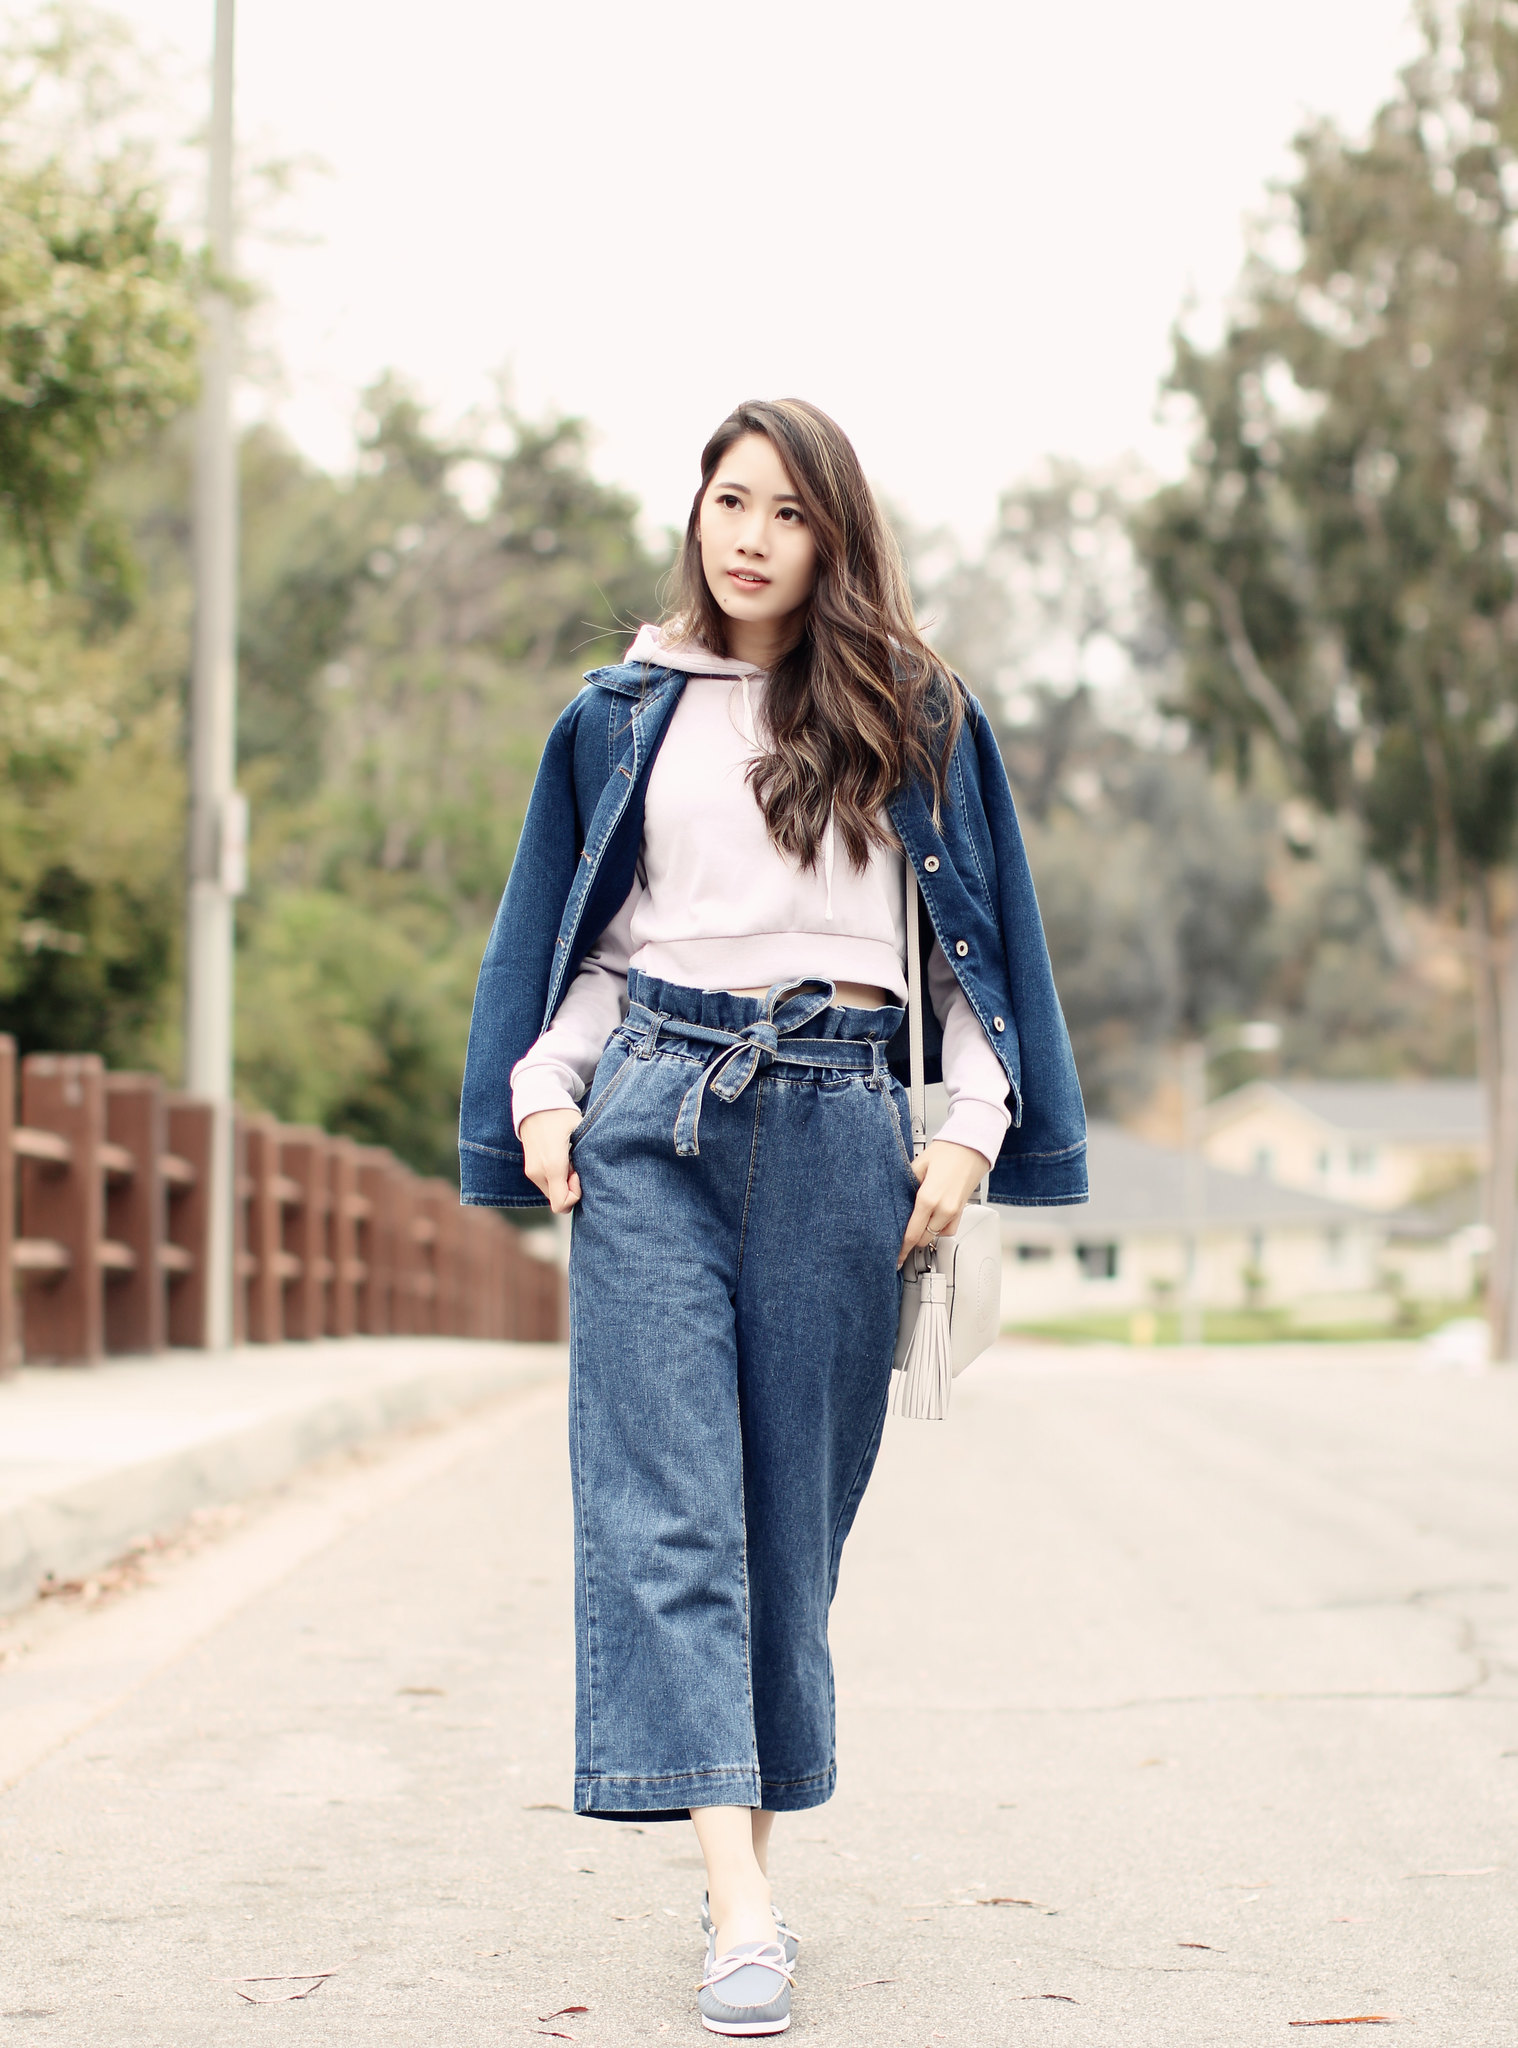 5085-ootd-fashion-style-outfitoftheday-wiwt-streetstyle-zara-f21xme-denim-thrifted-guess-koreanfashion-lookbook-elizabeeetht-clothestoyouuu